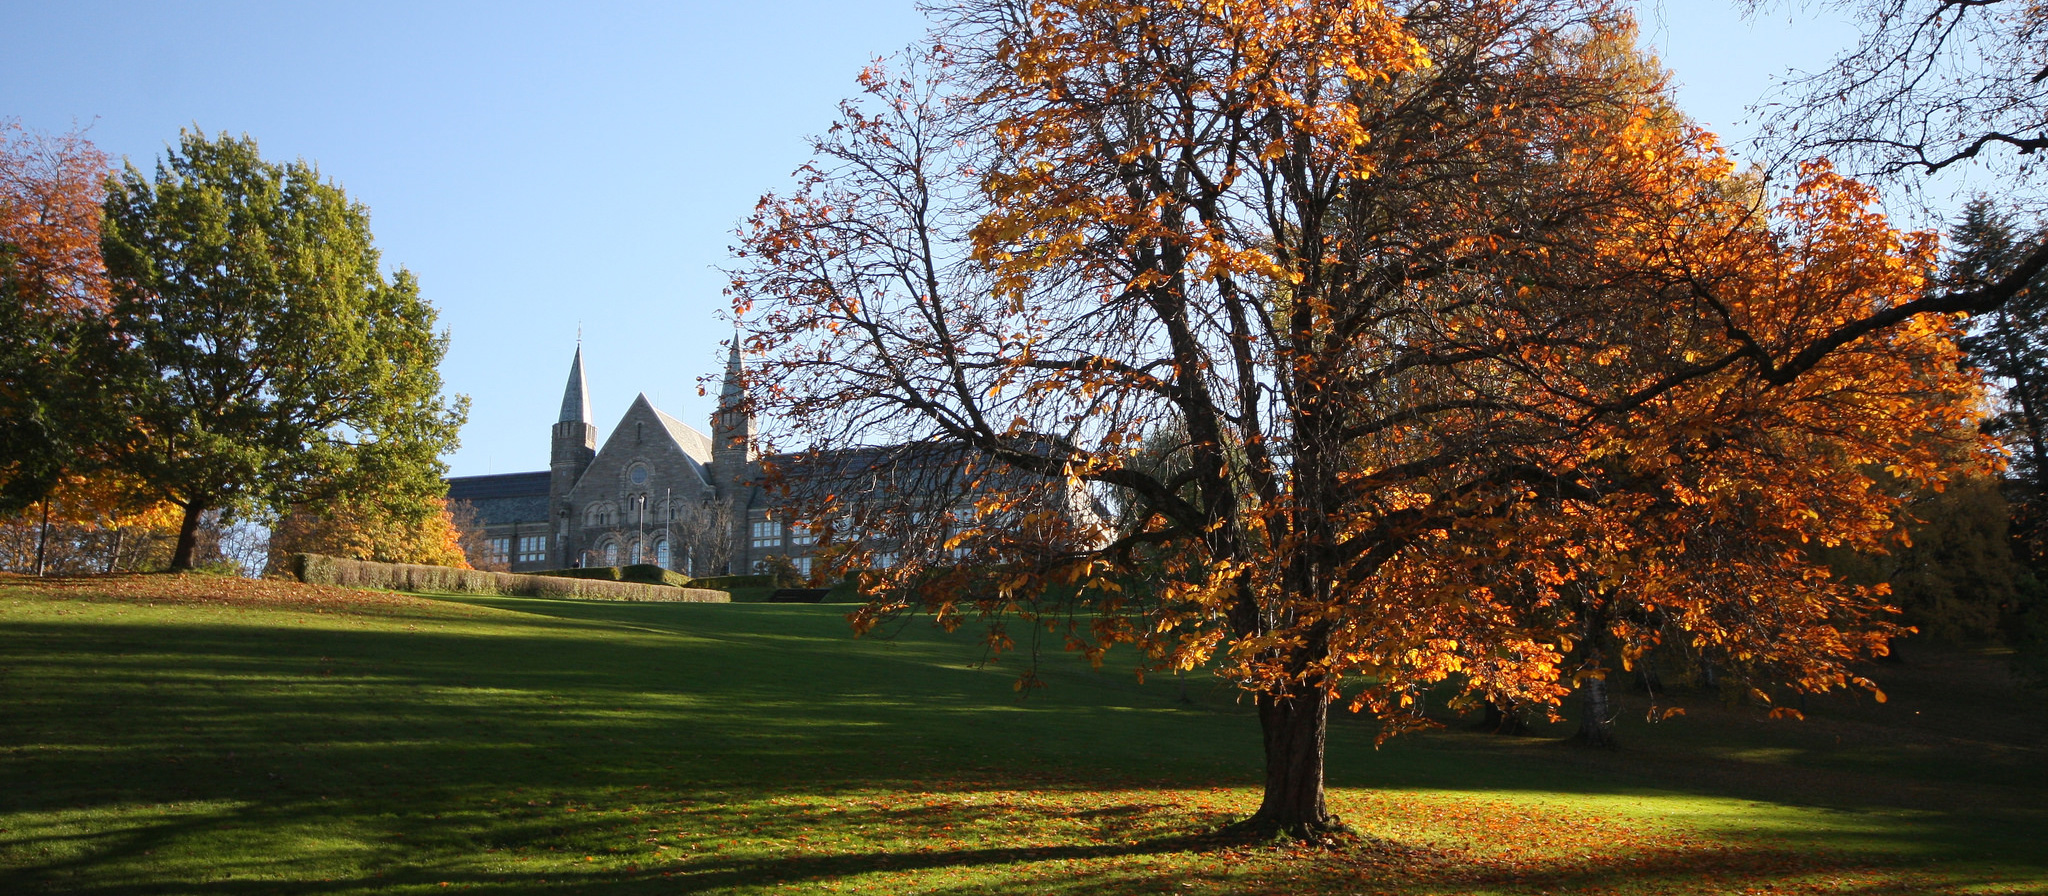 University campus park in fall, grass, orange trees and old stone building with spears.